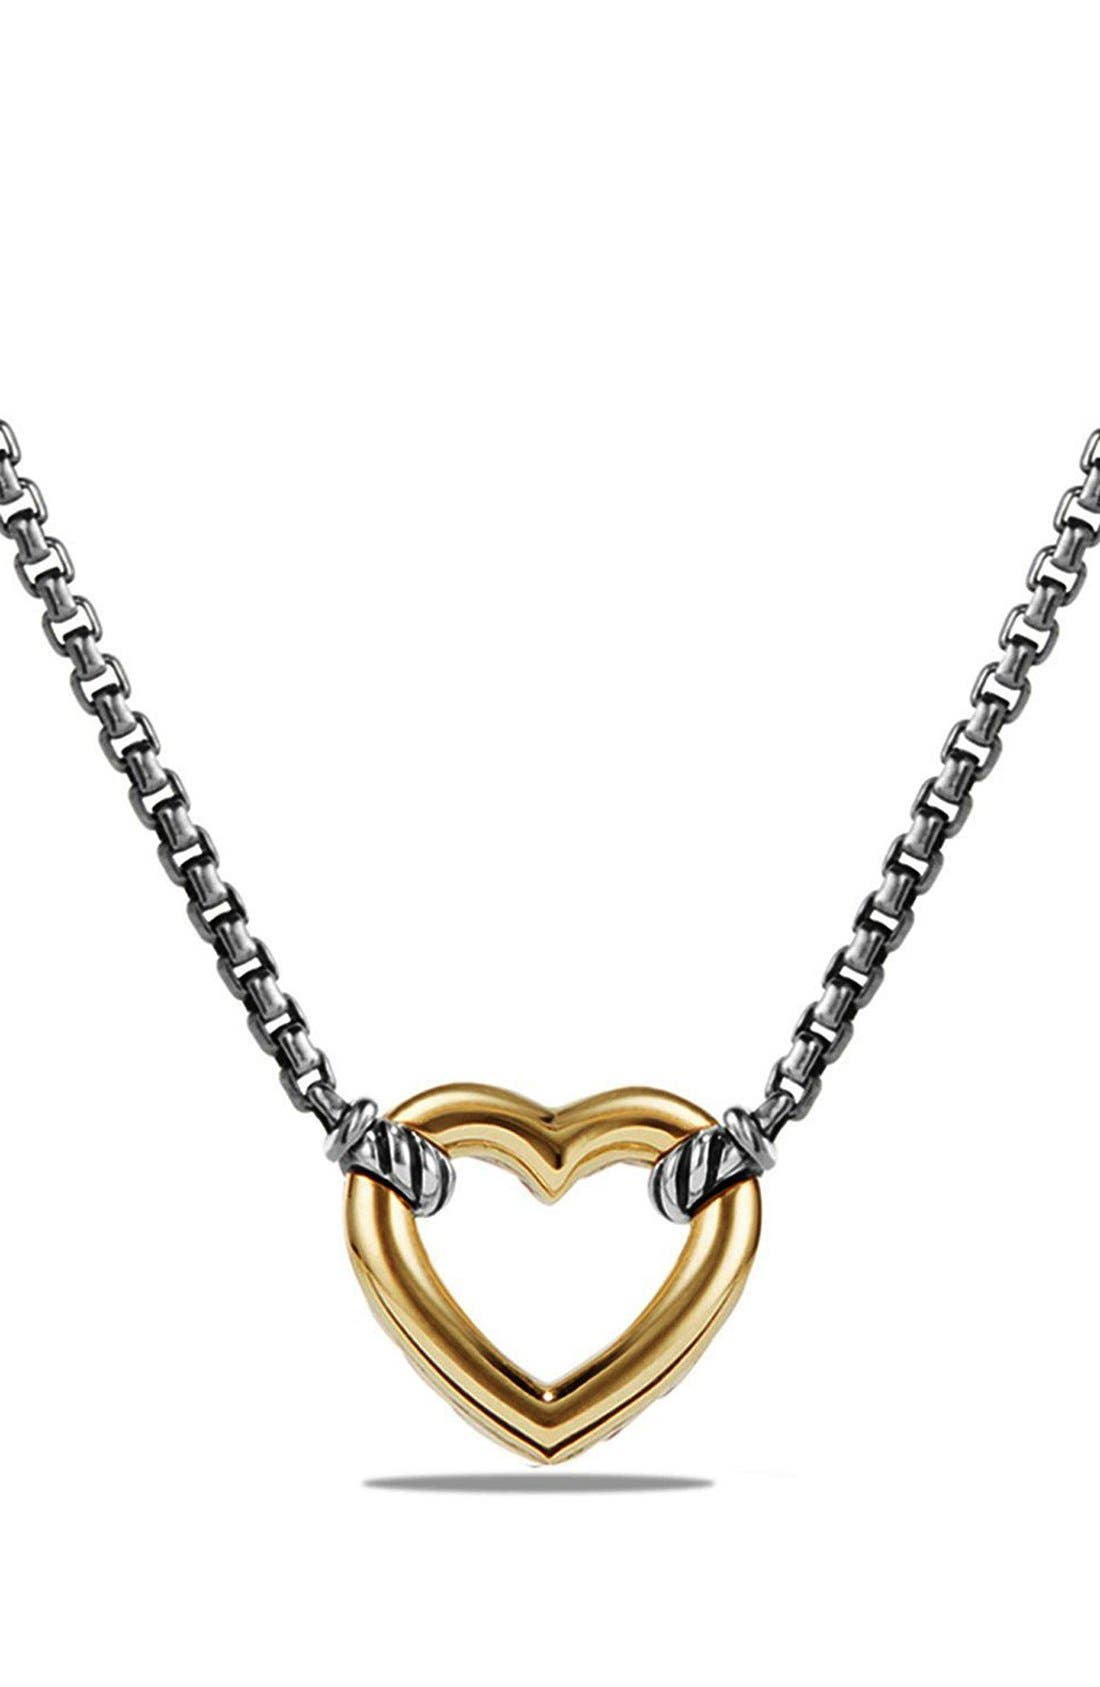 'Cable Collectibles' Heart Station Necklace with 18K Gold,                         Main,                         color, Silver/ Gold